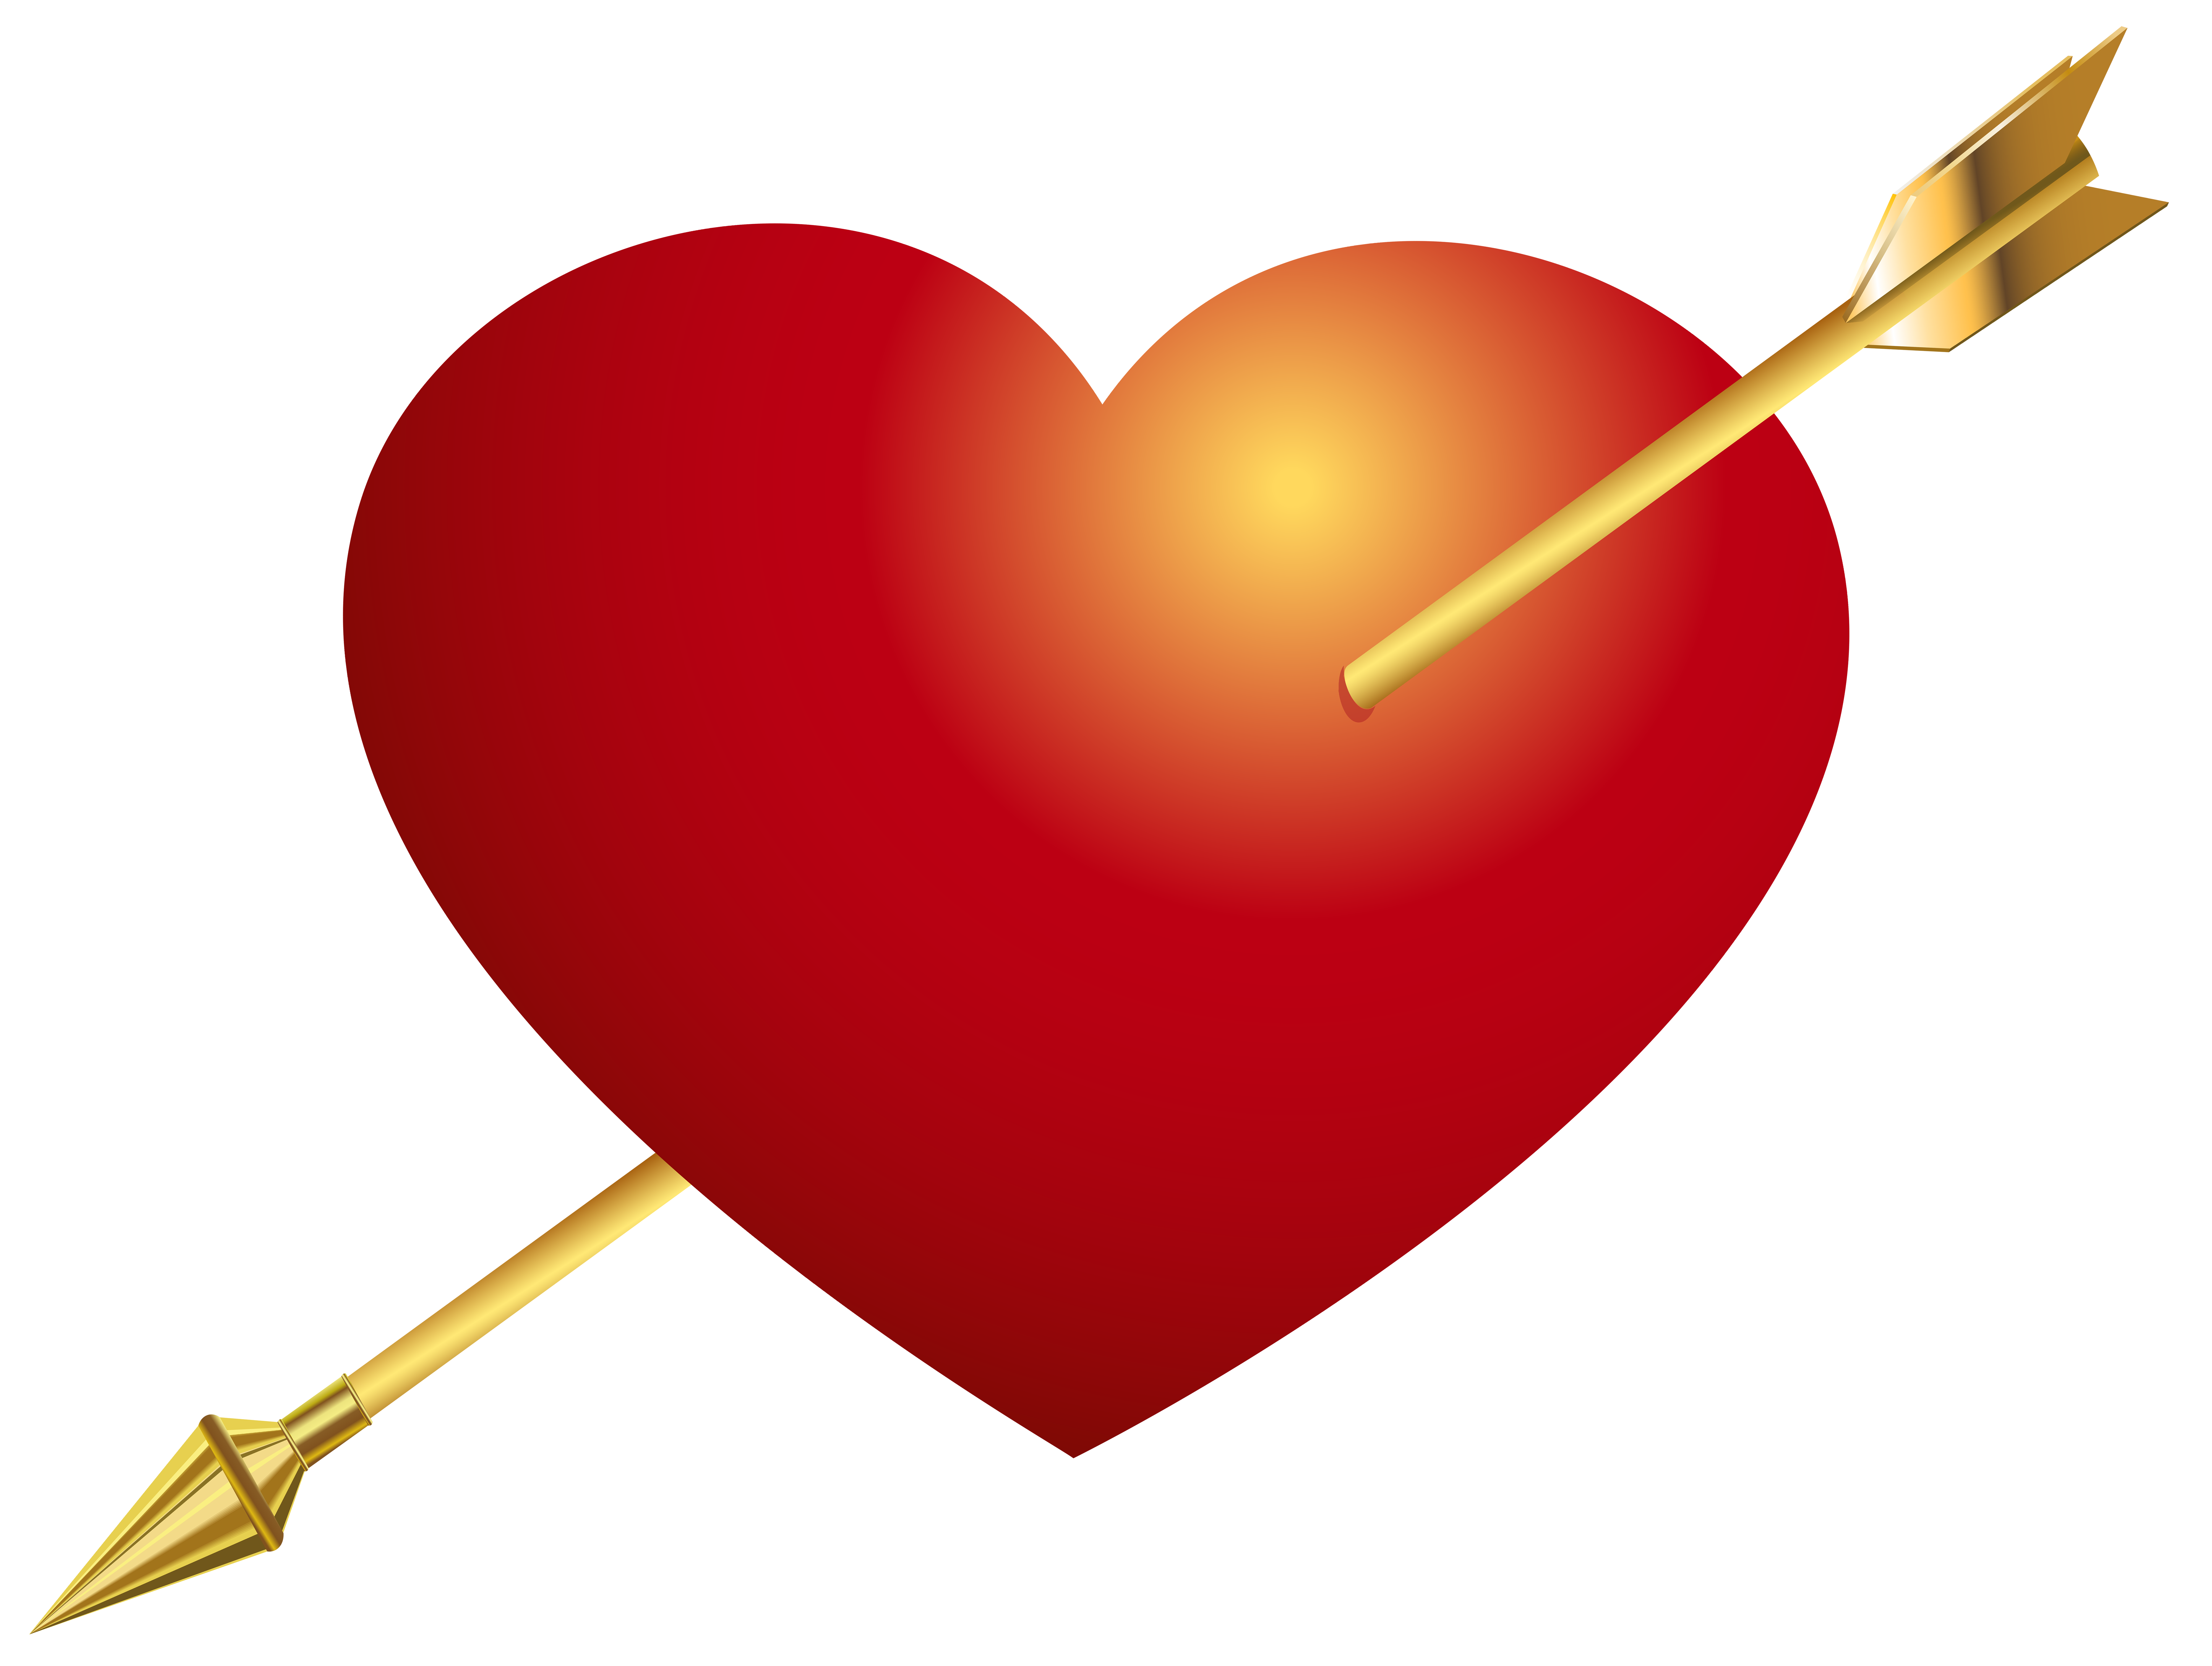 Red Heart with Arrow PNG Clip Art Image clip transparent stock